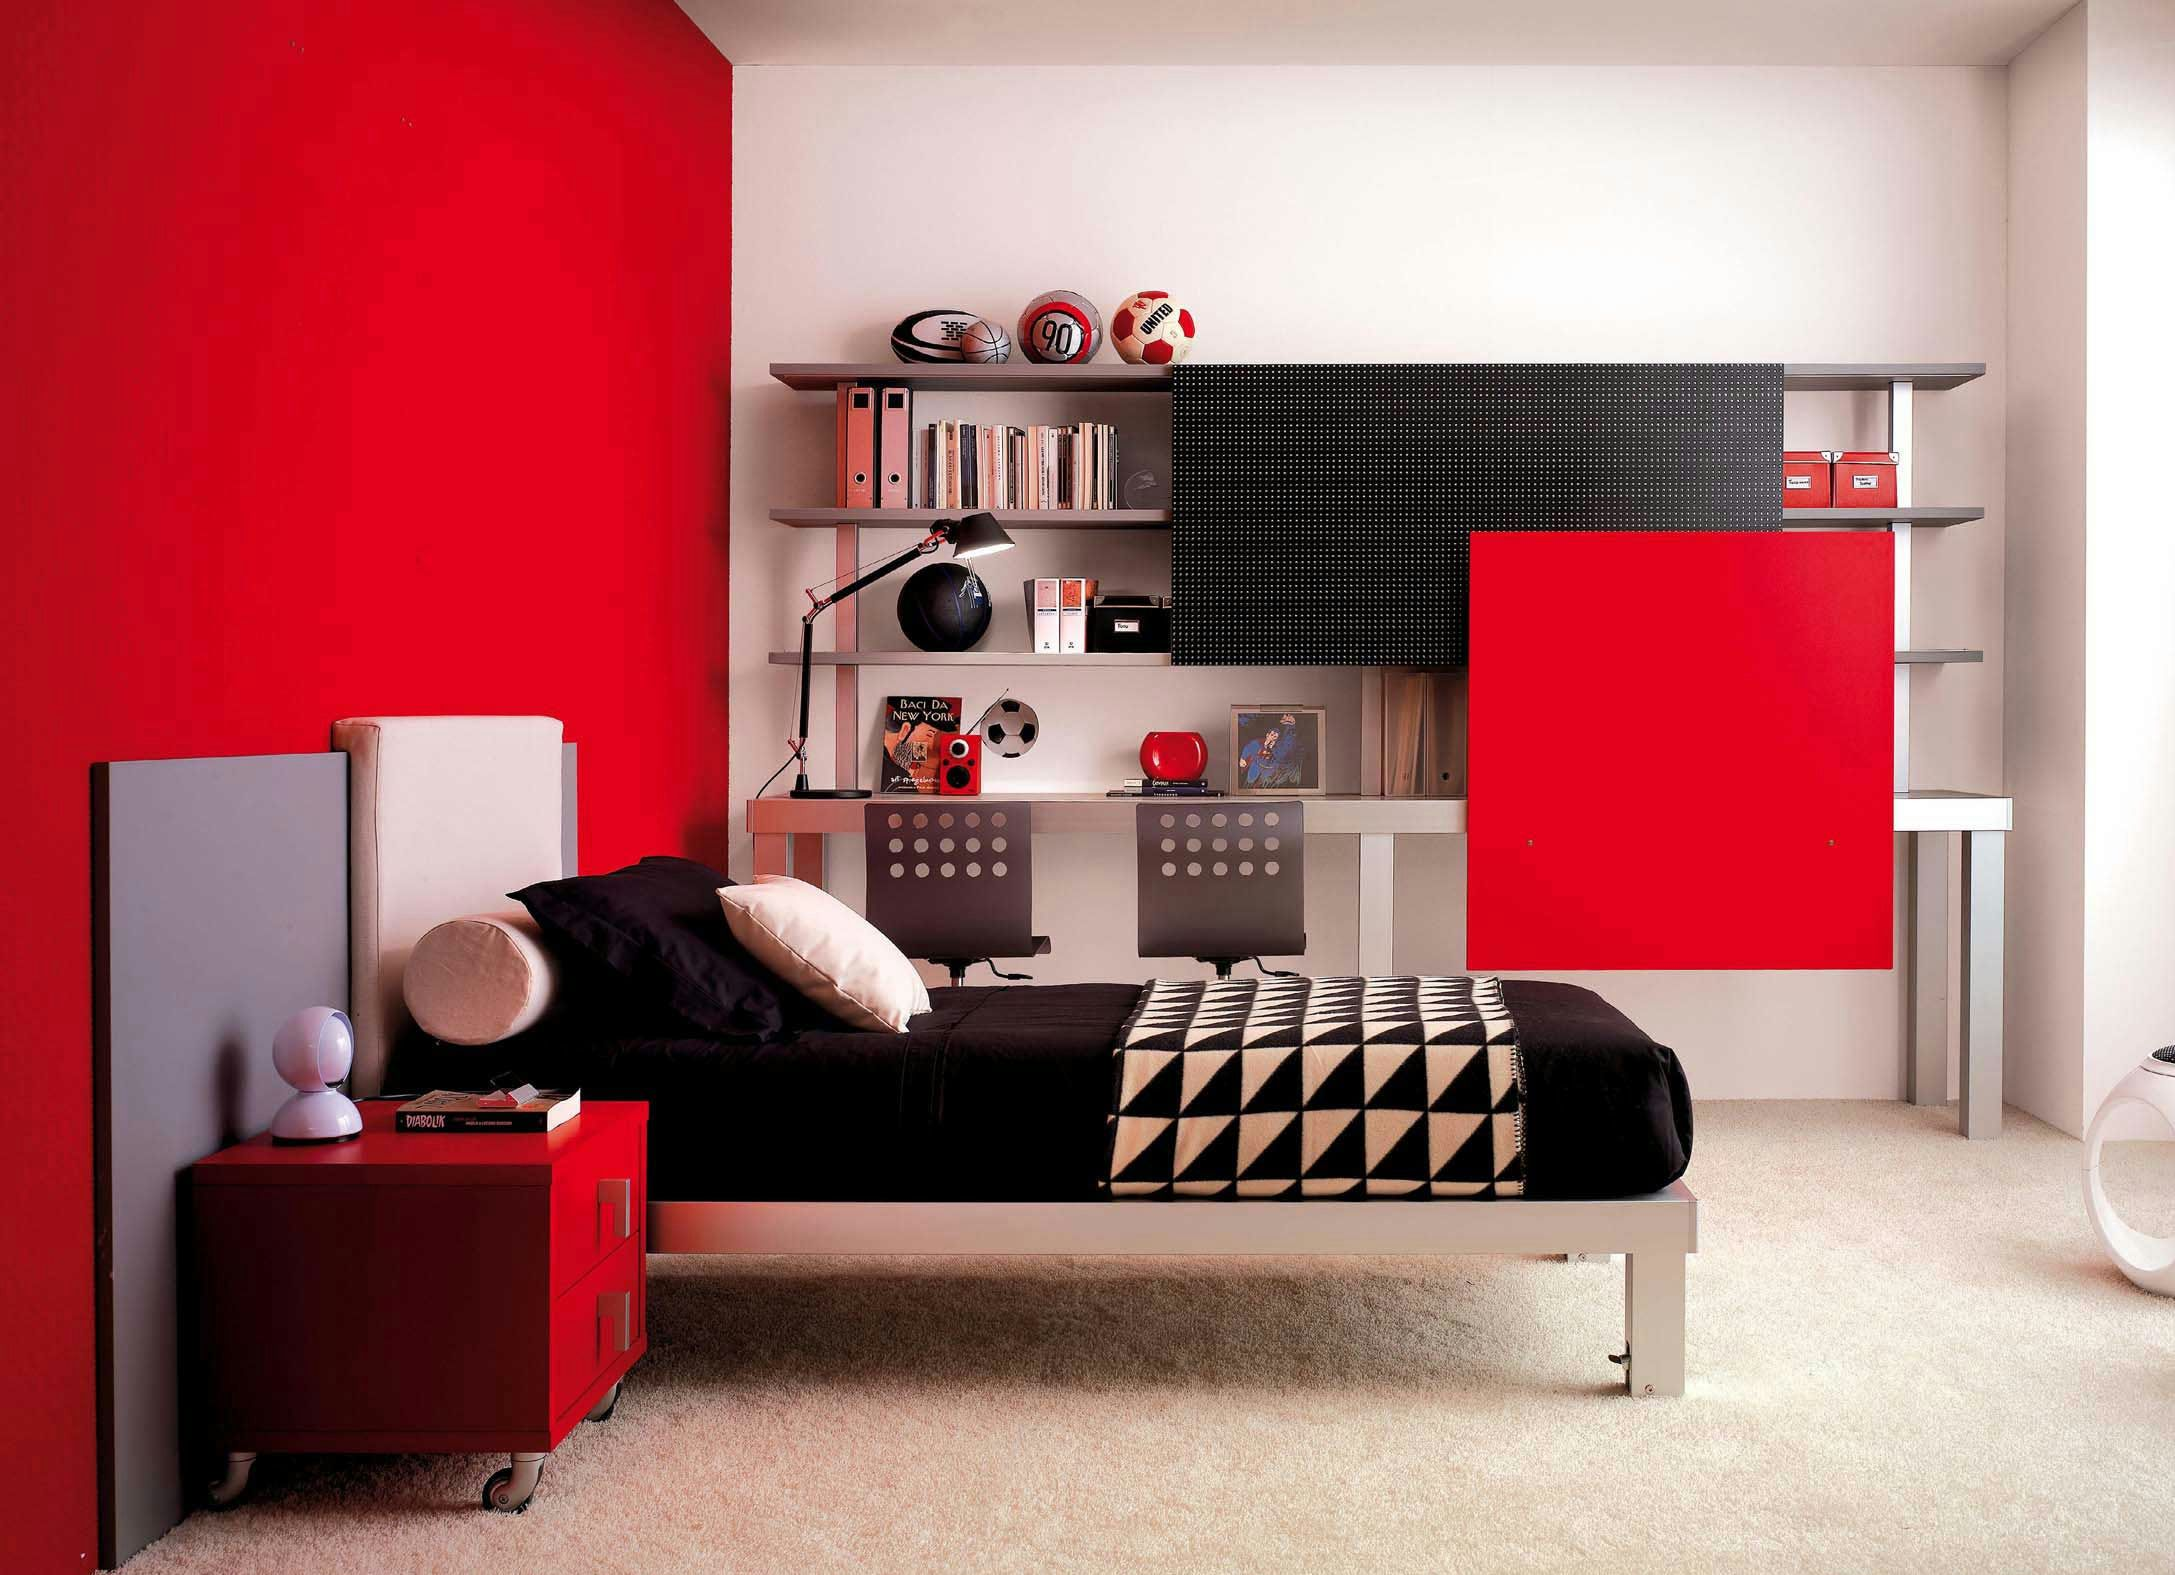 Painting Ideas Red And White Of Wall Decoration Paint In Cool Bedroom